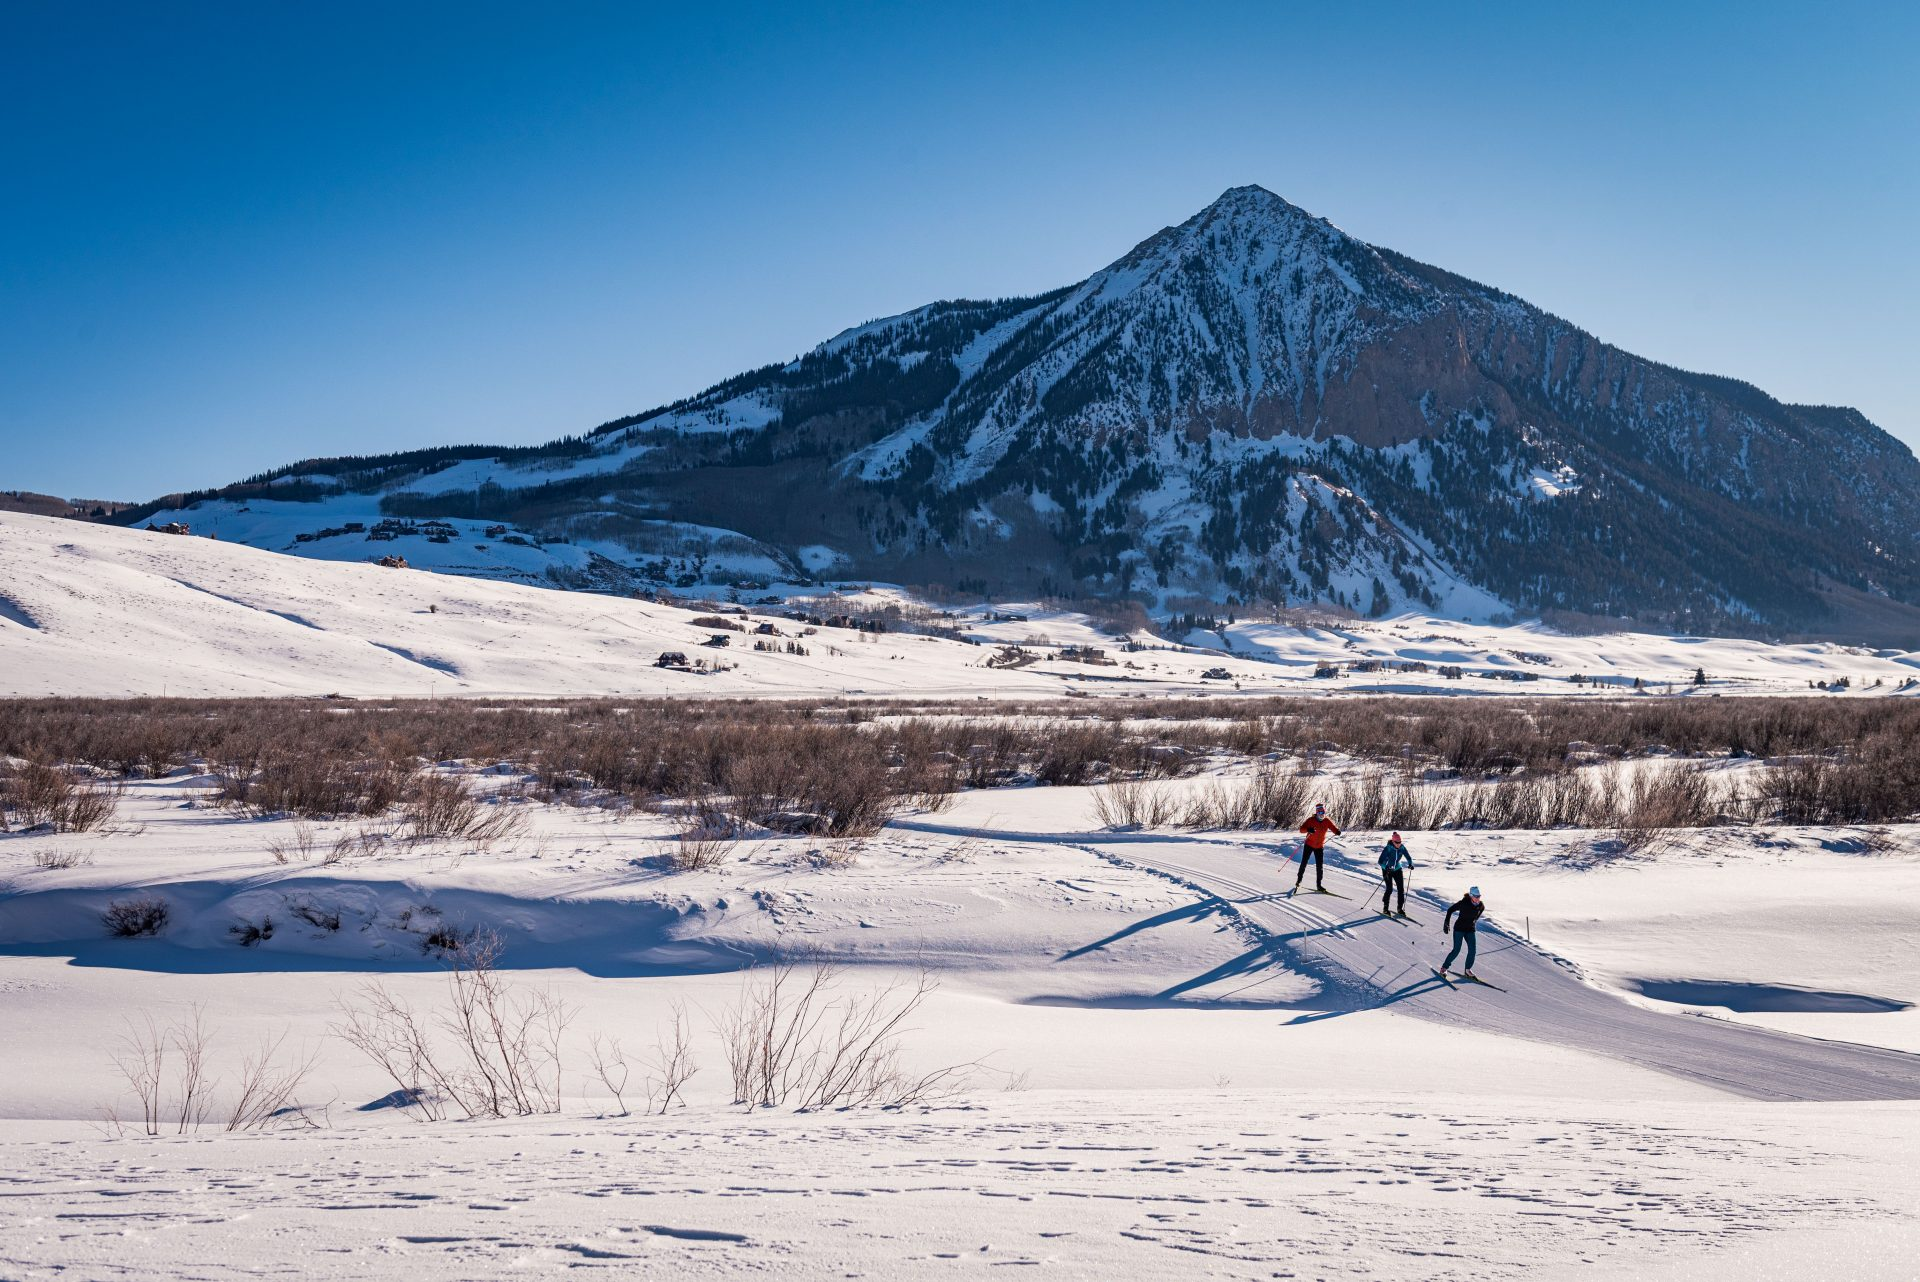 Skiers on Peanut Lake trails with Mt Crested Butte in background